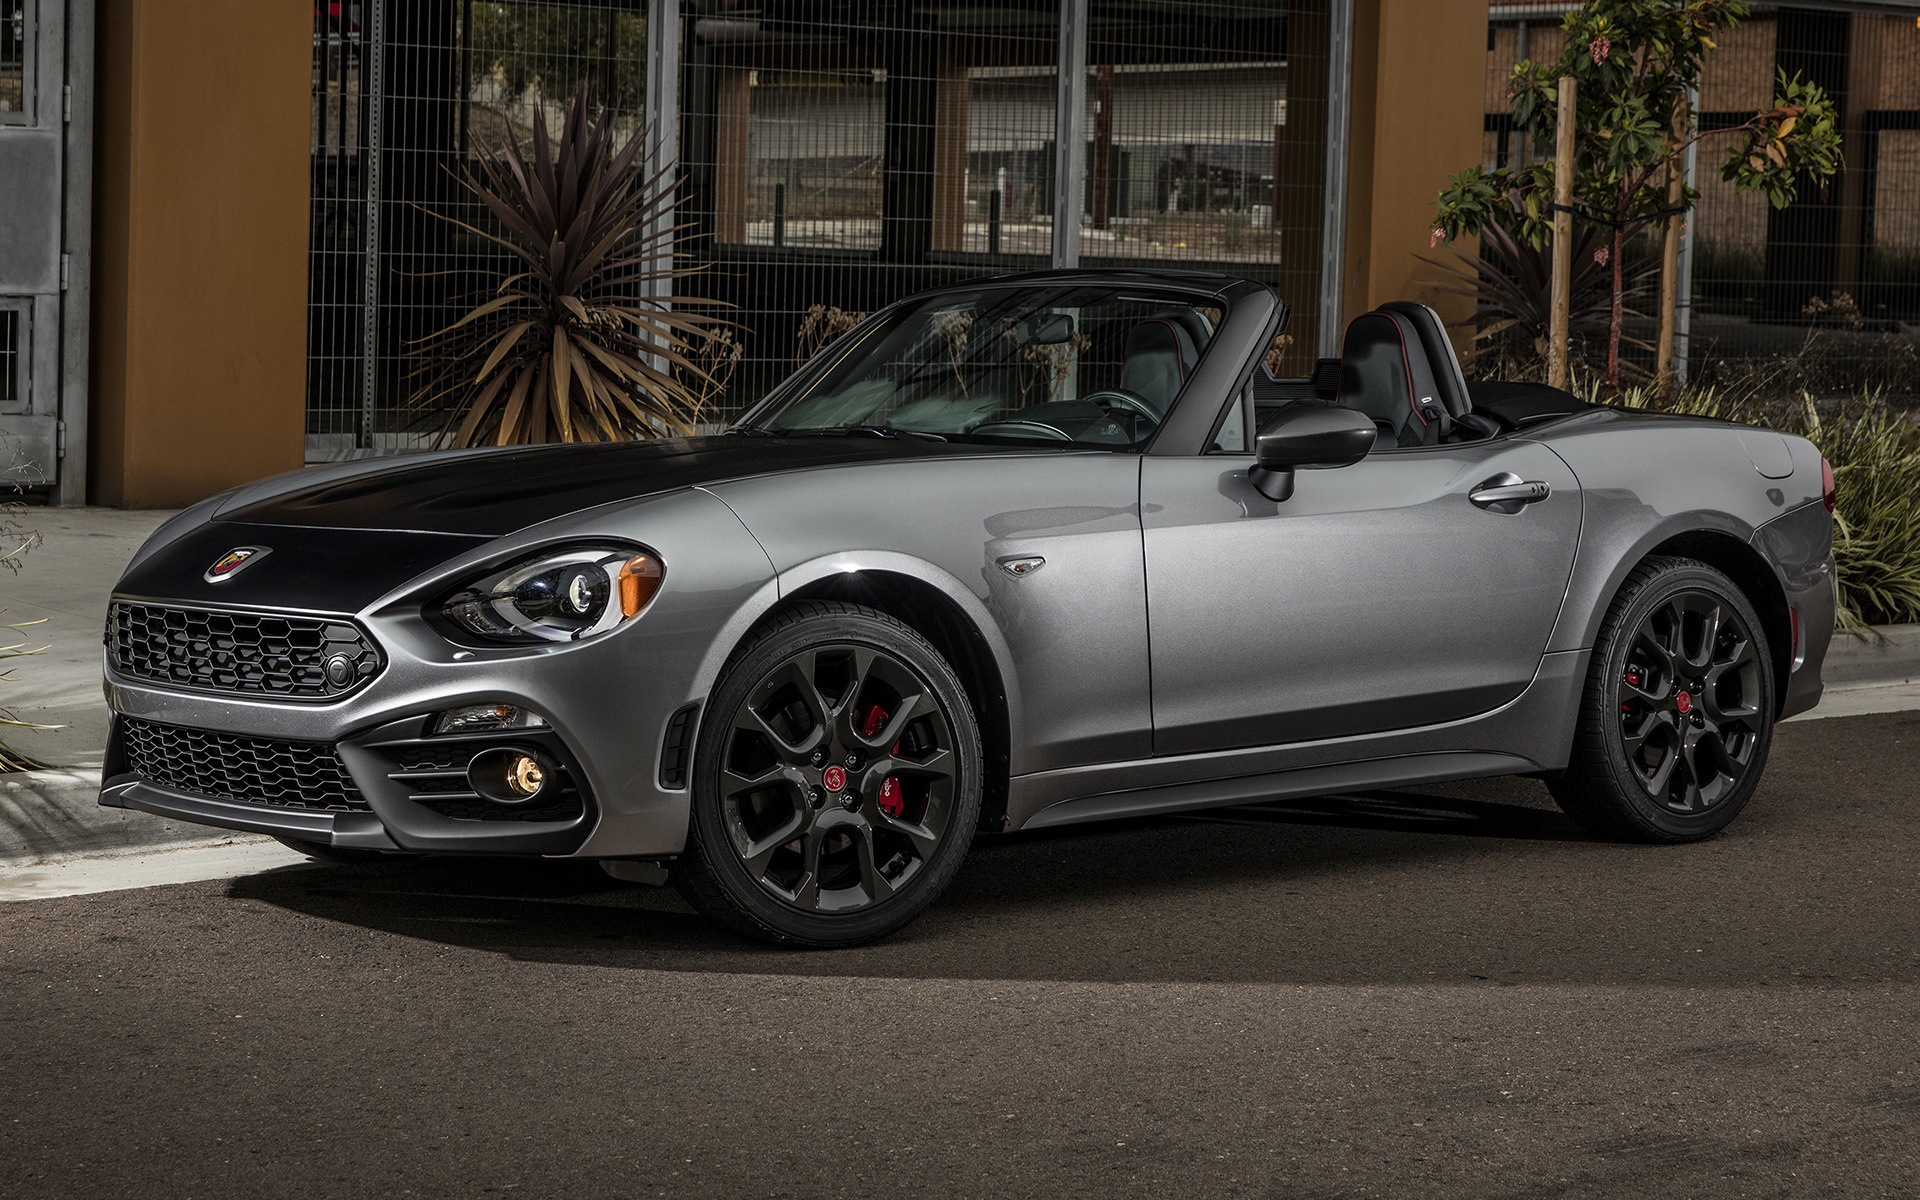 2016 Hyundai Genesis Coupe >> Fiat 124 Spider Abarth (2017) US Wallpapers and HD Images ...